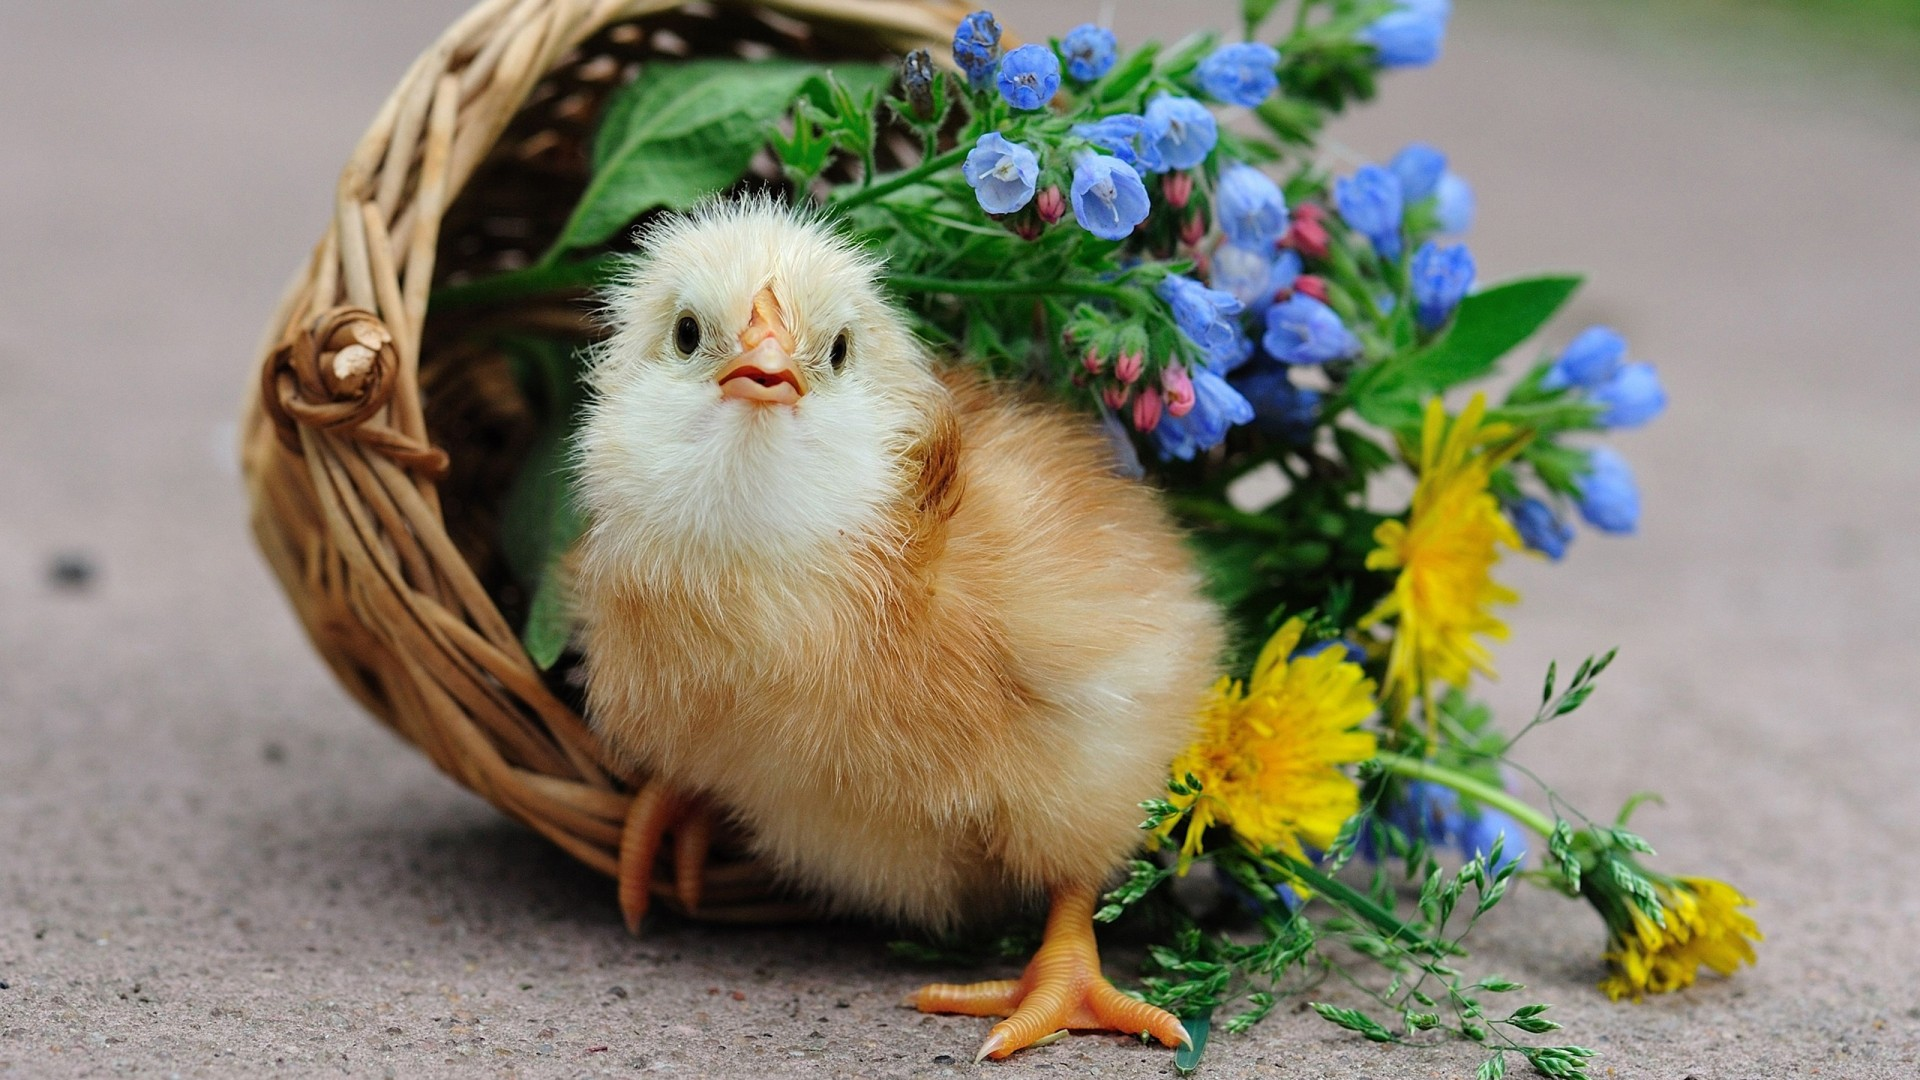 Flowers Birds Wallpaper 1920x1080 Flowers Birds Baskets Chicks 1920x1080